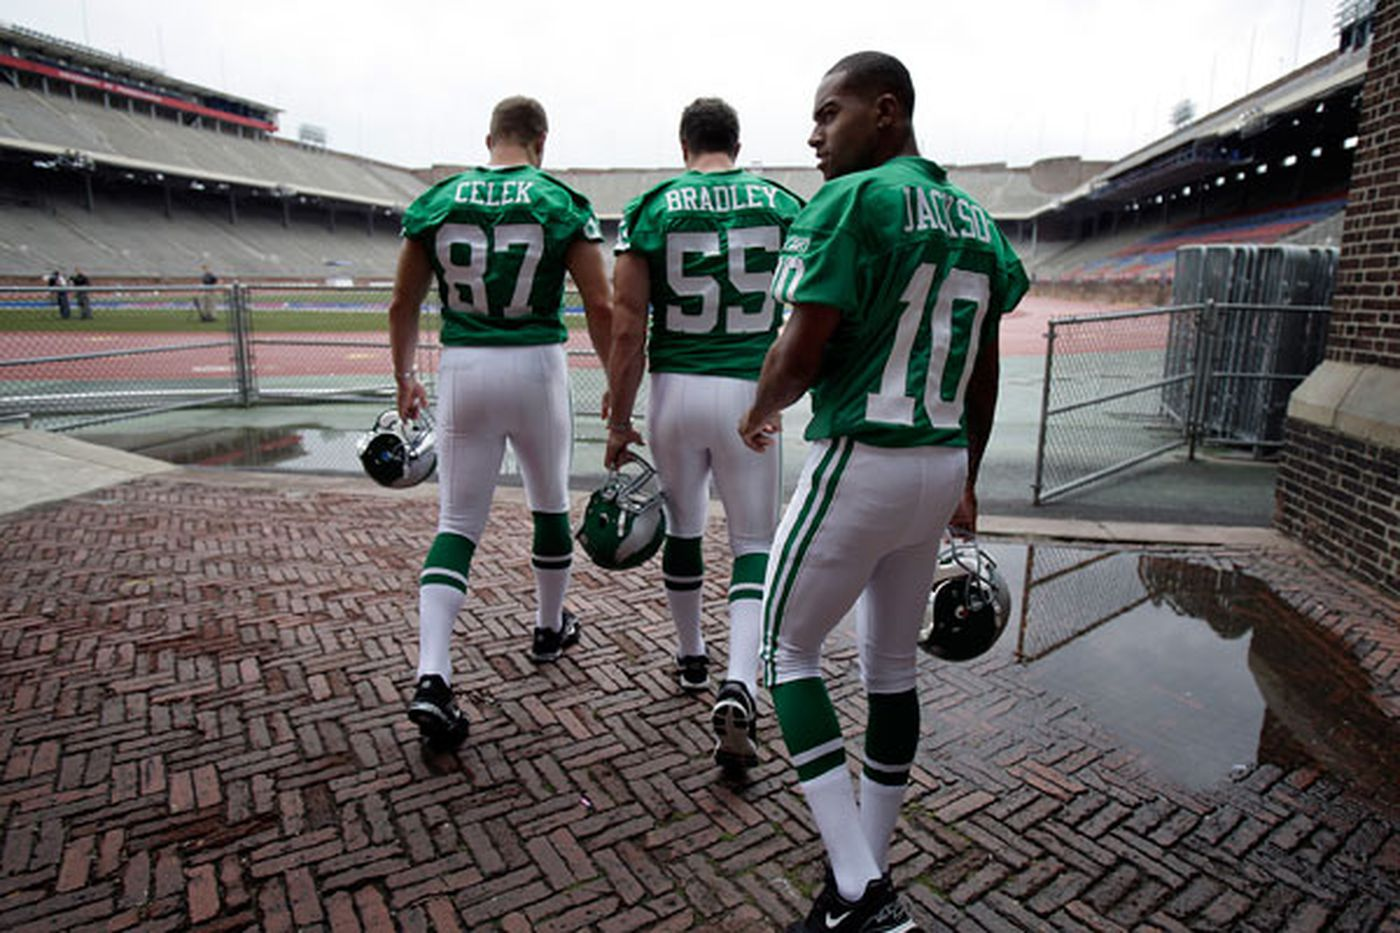 fb4f599ebf7 2010: Eagles going green with throwback jerseys for season opener